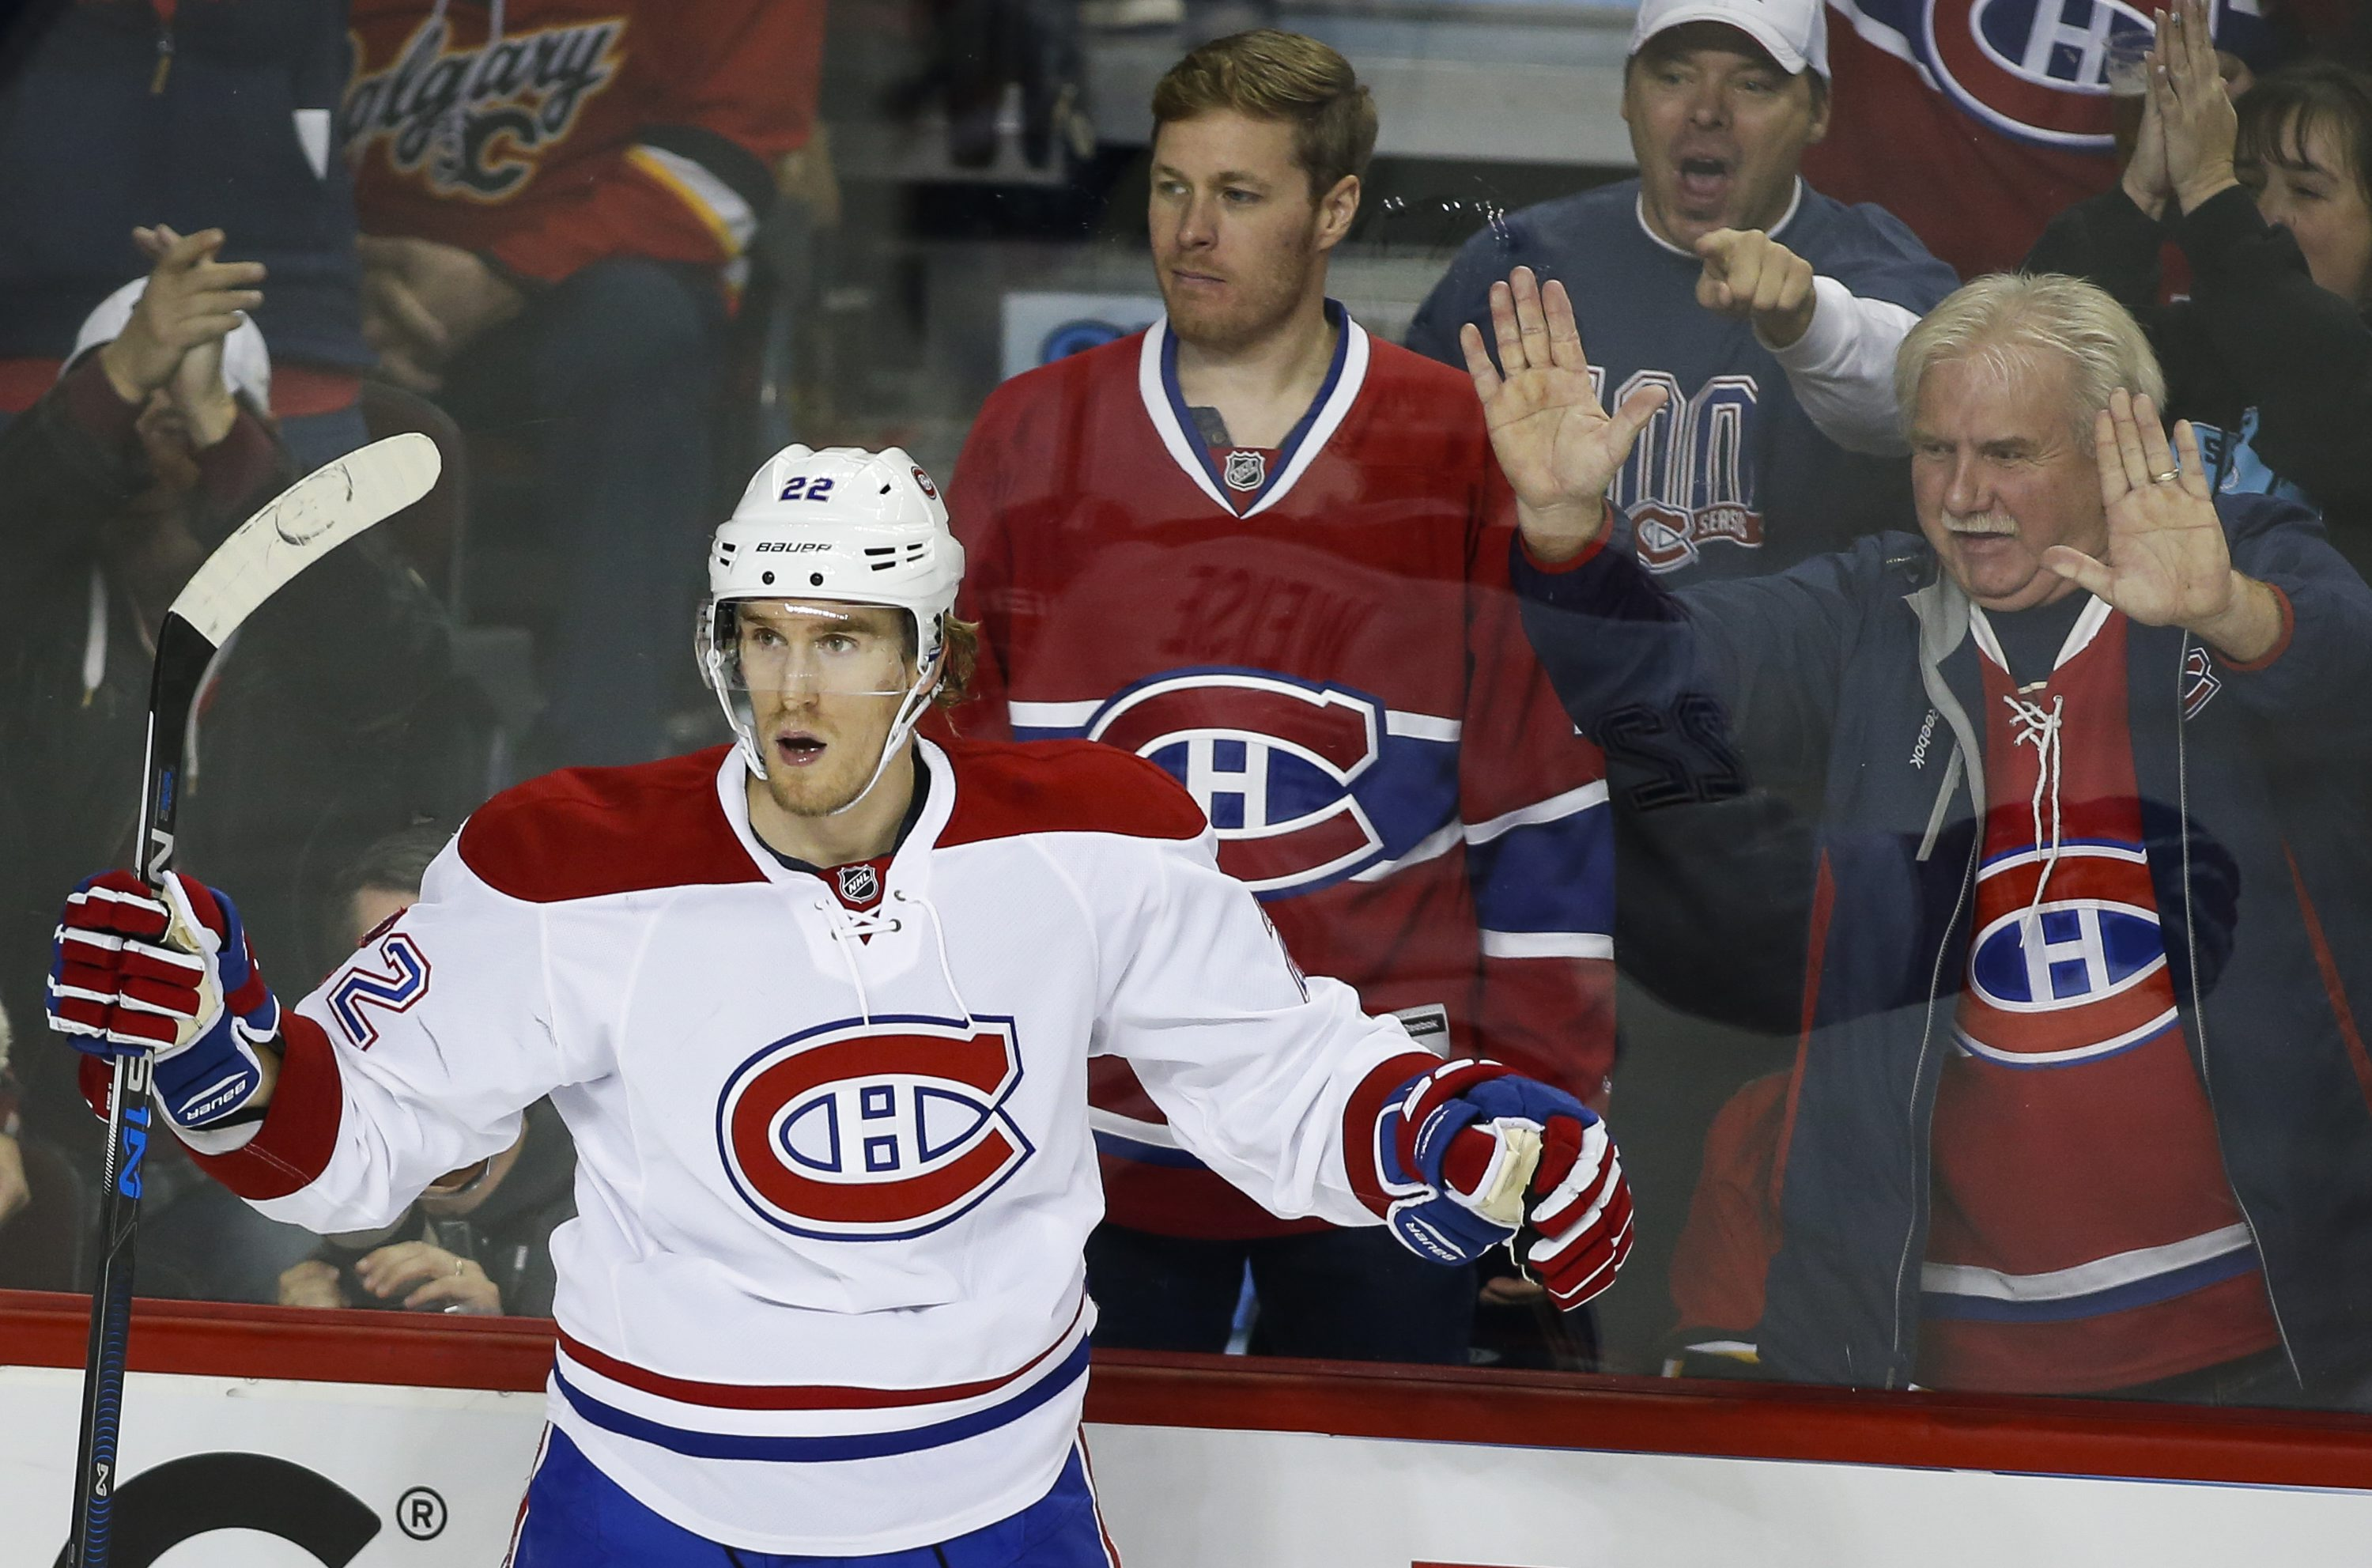 Montreal Canadiens' Dale Weise celebrates his goal against the Calgary Flames during the second period of an NHL hockey game Friday, Oct. 30, 2015, in Calgary, Alberta. (Jeff McIntosh/The Canadian Press via AP) MANDATORY CREDIT